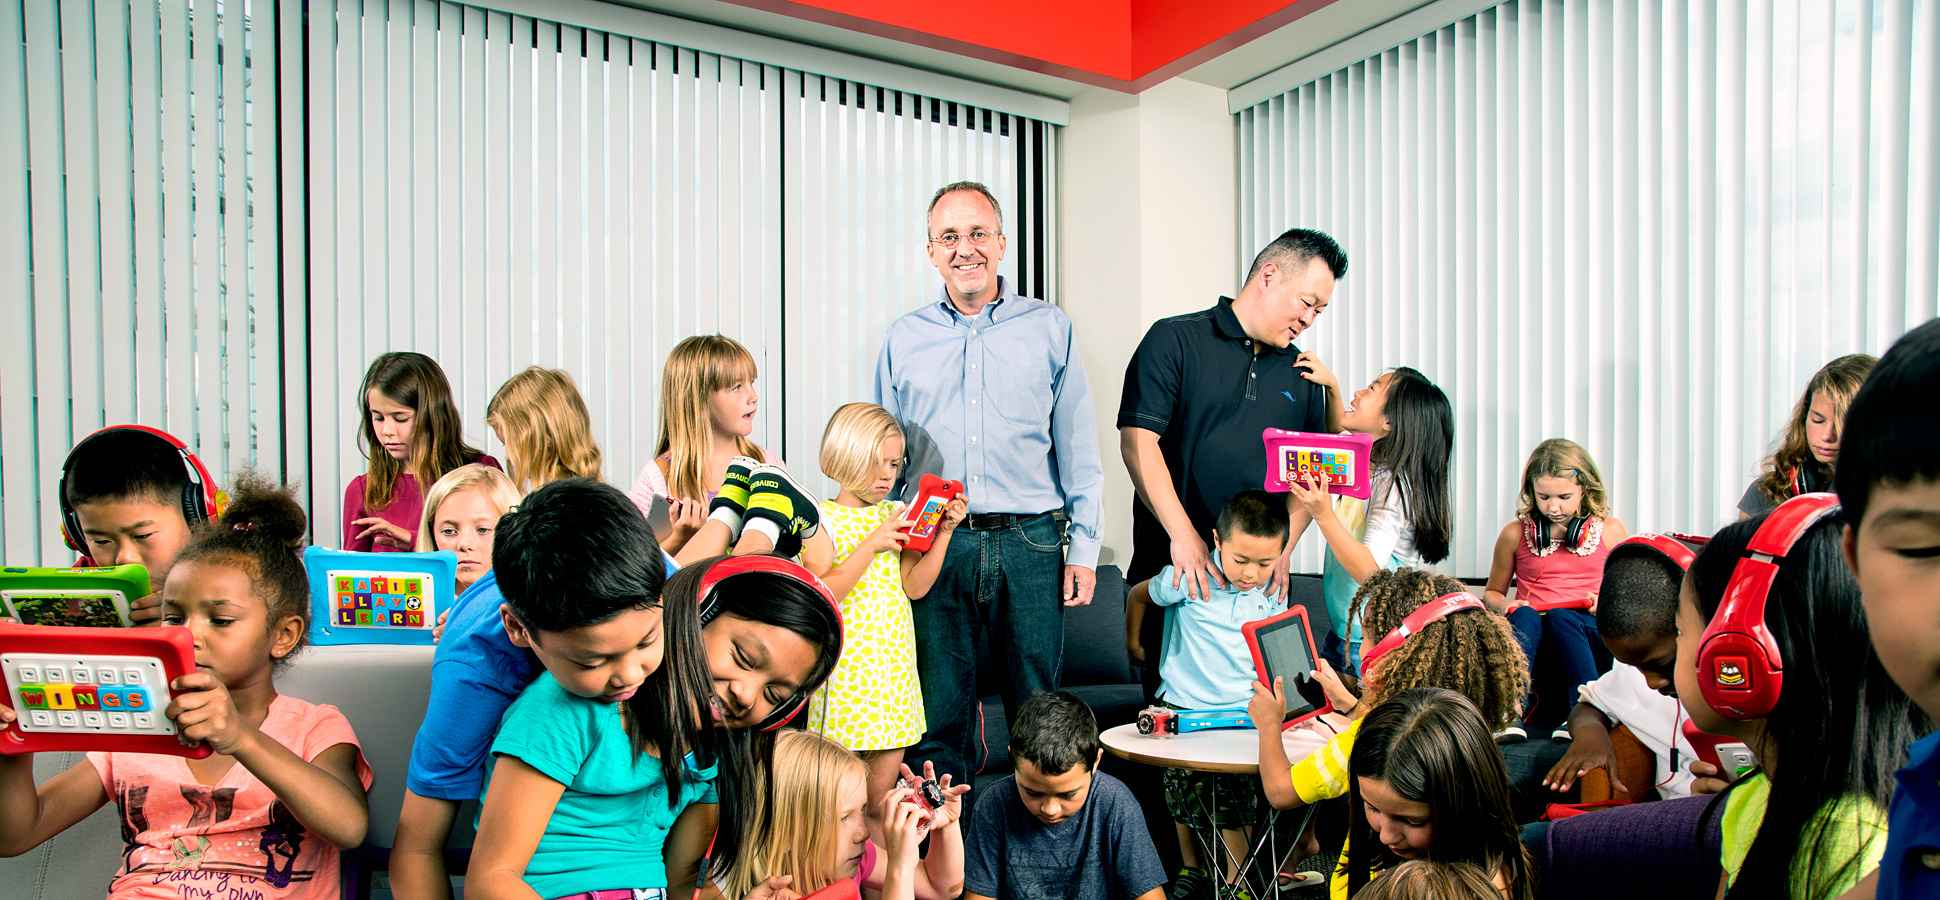 Kid You Not: The Very Serious Business of Building The Fastest-Growing Company in America